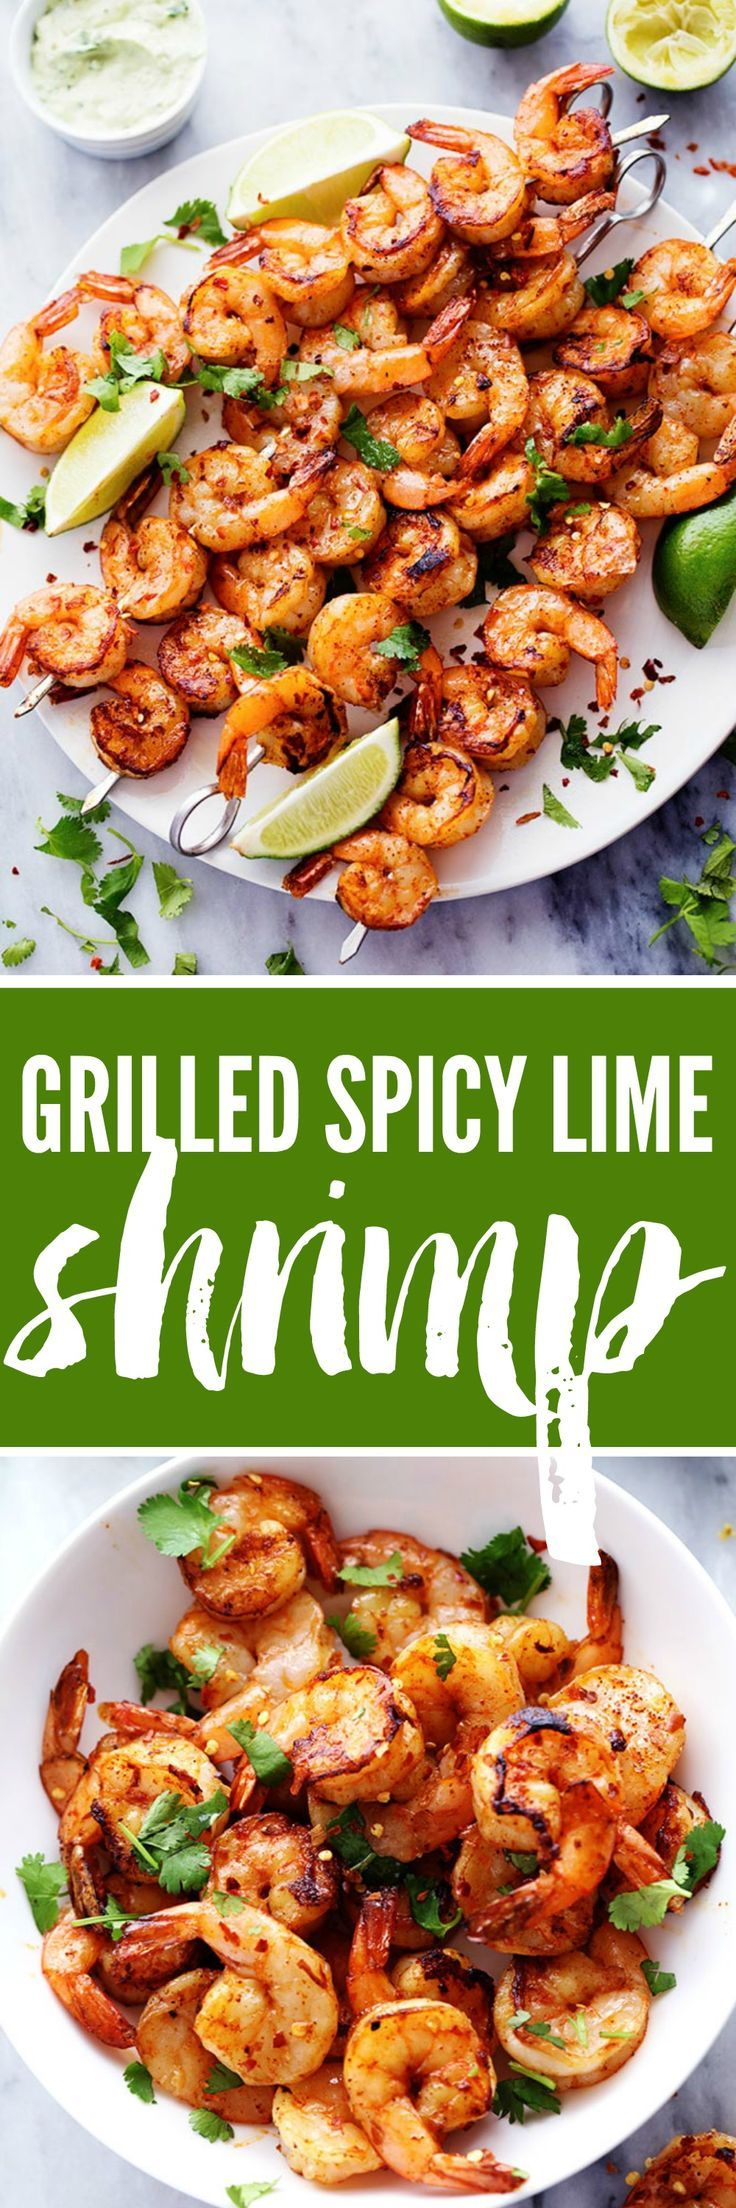 Grilled Spicy Lime Shrimp with Creamy Avocado Cilantro Sauce has a simple but full of flavor and spice marinade. The creamy avocado cilantro sauce is the perfect cool and creamy dipping sauce.